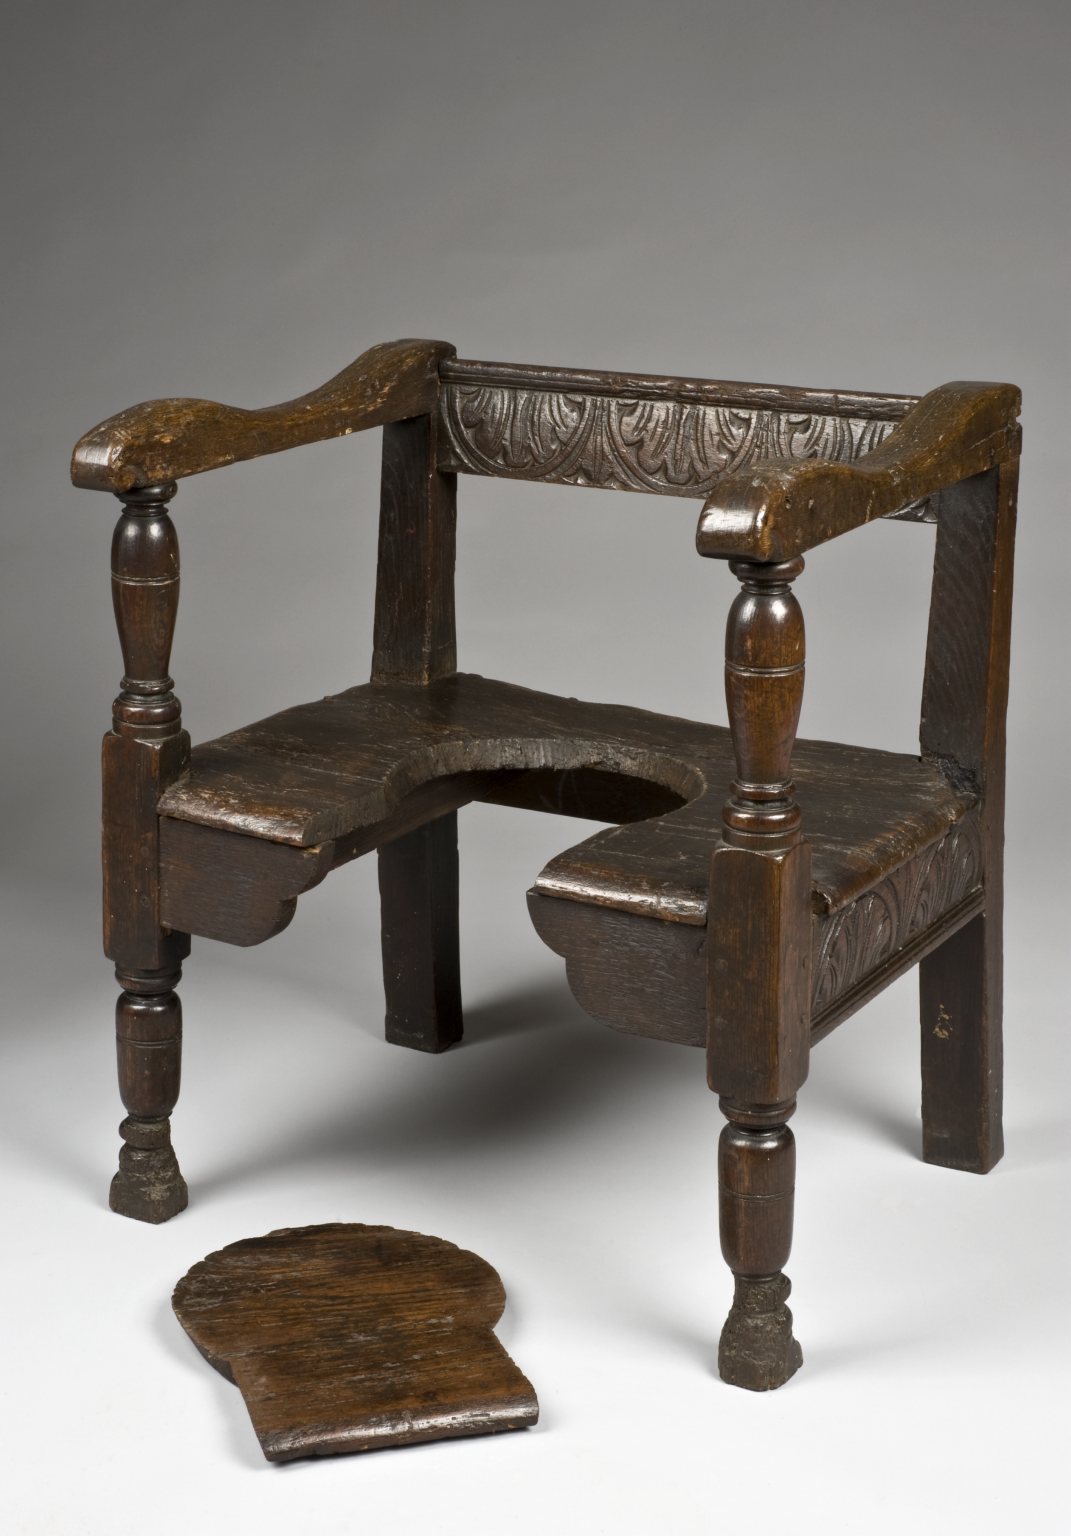 Parturition (birthing) chair, England, 1601-1700 - Parturition (birthing) Chair, England, 1601-1700 History Of